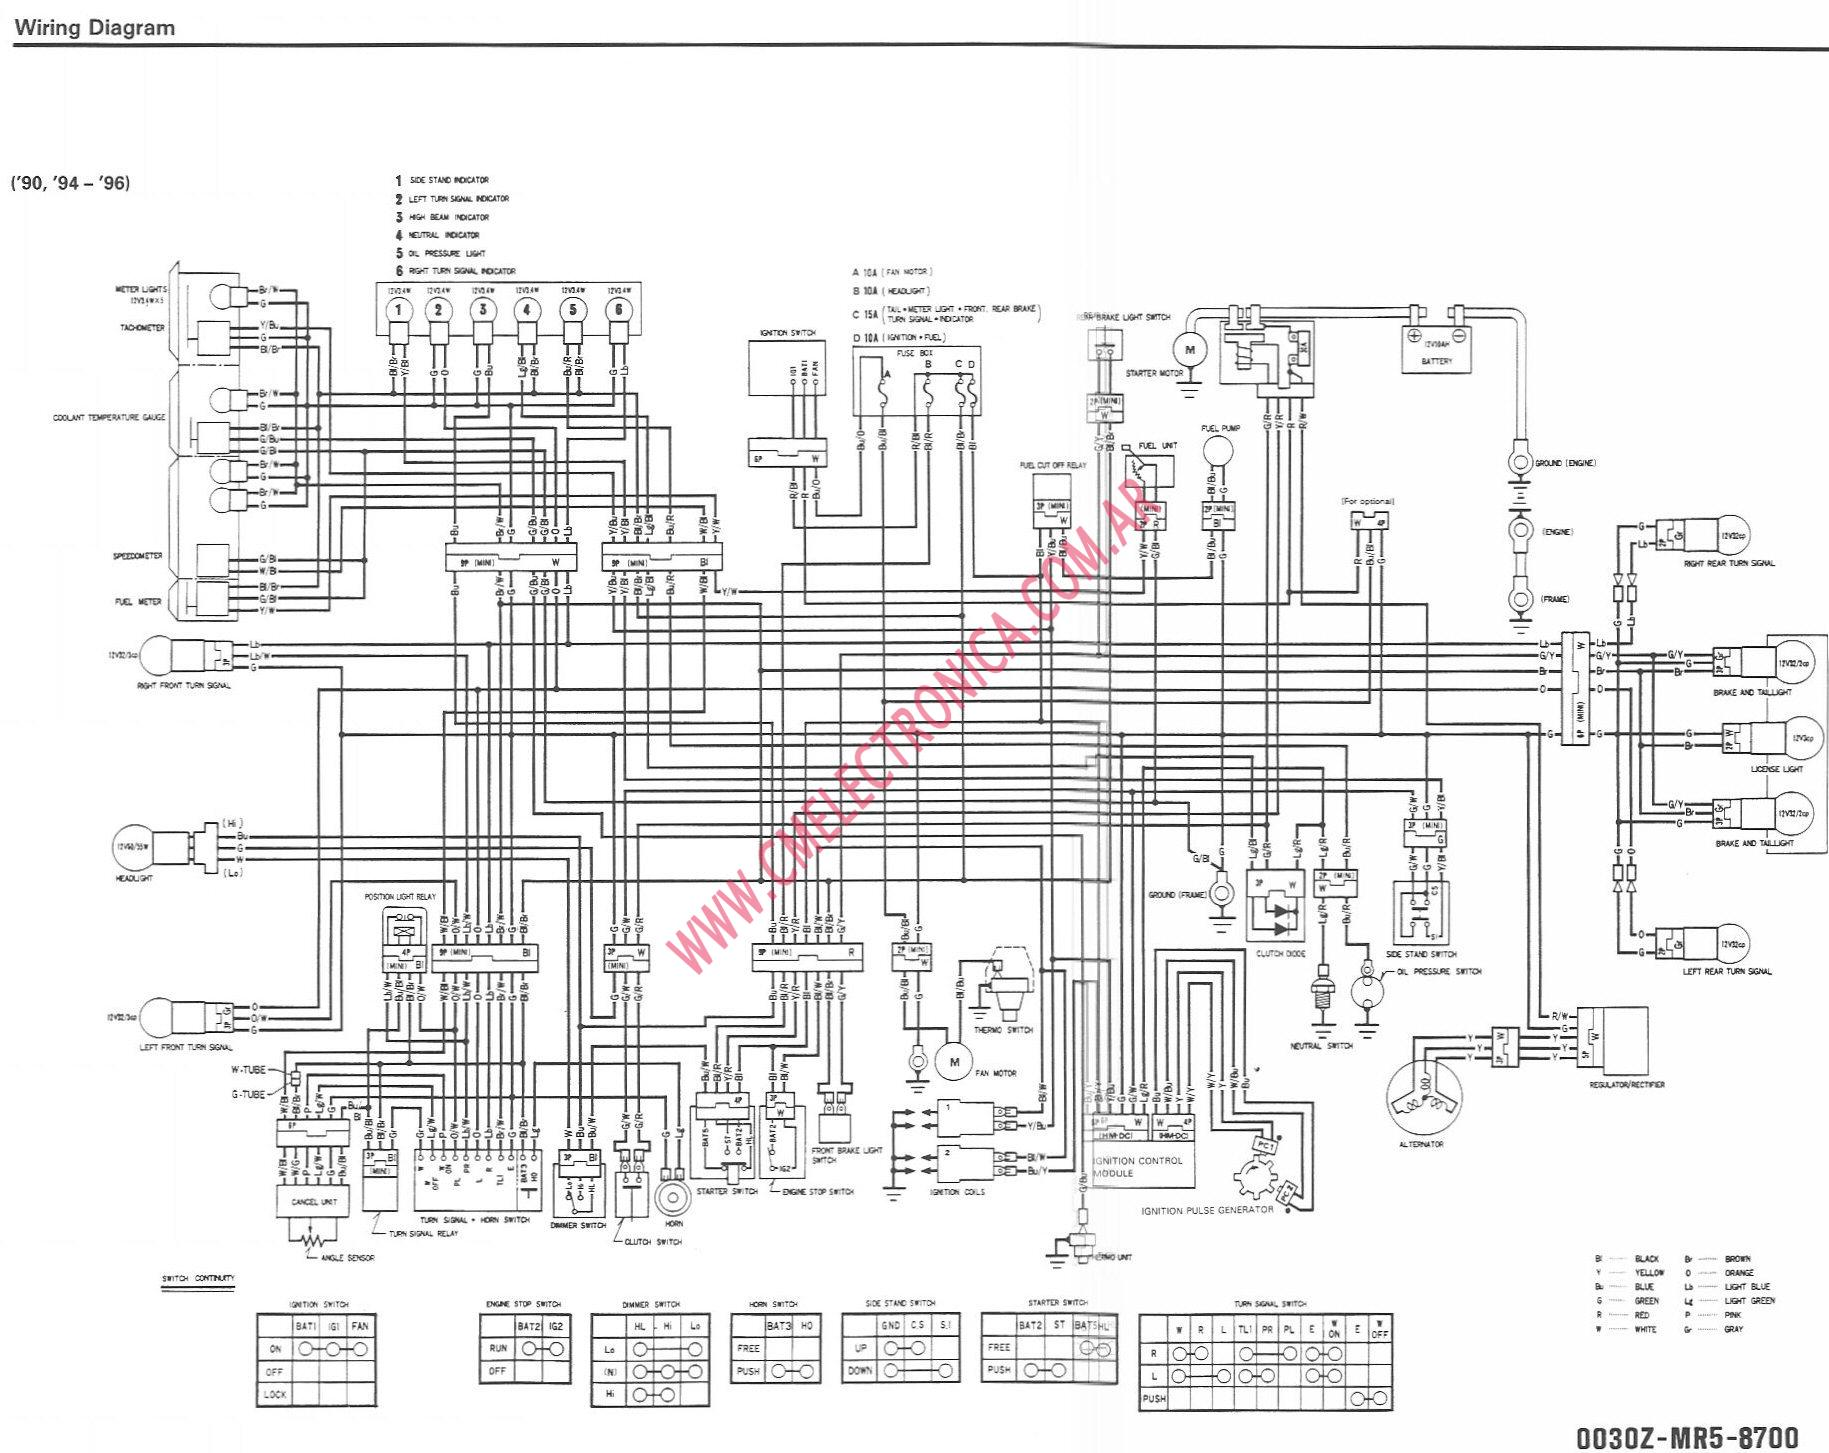 Wiring Diagrams Linhai 300cc Scooter 260 Atv Diagram 29 Images 1020782 Wire Parts Honda Pc800resize6652c528